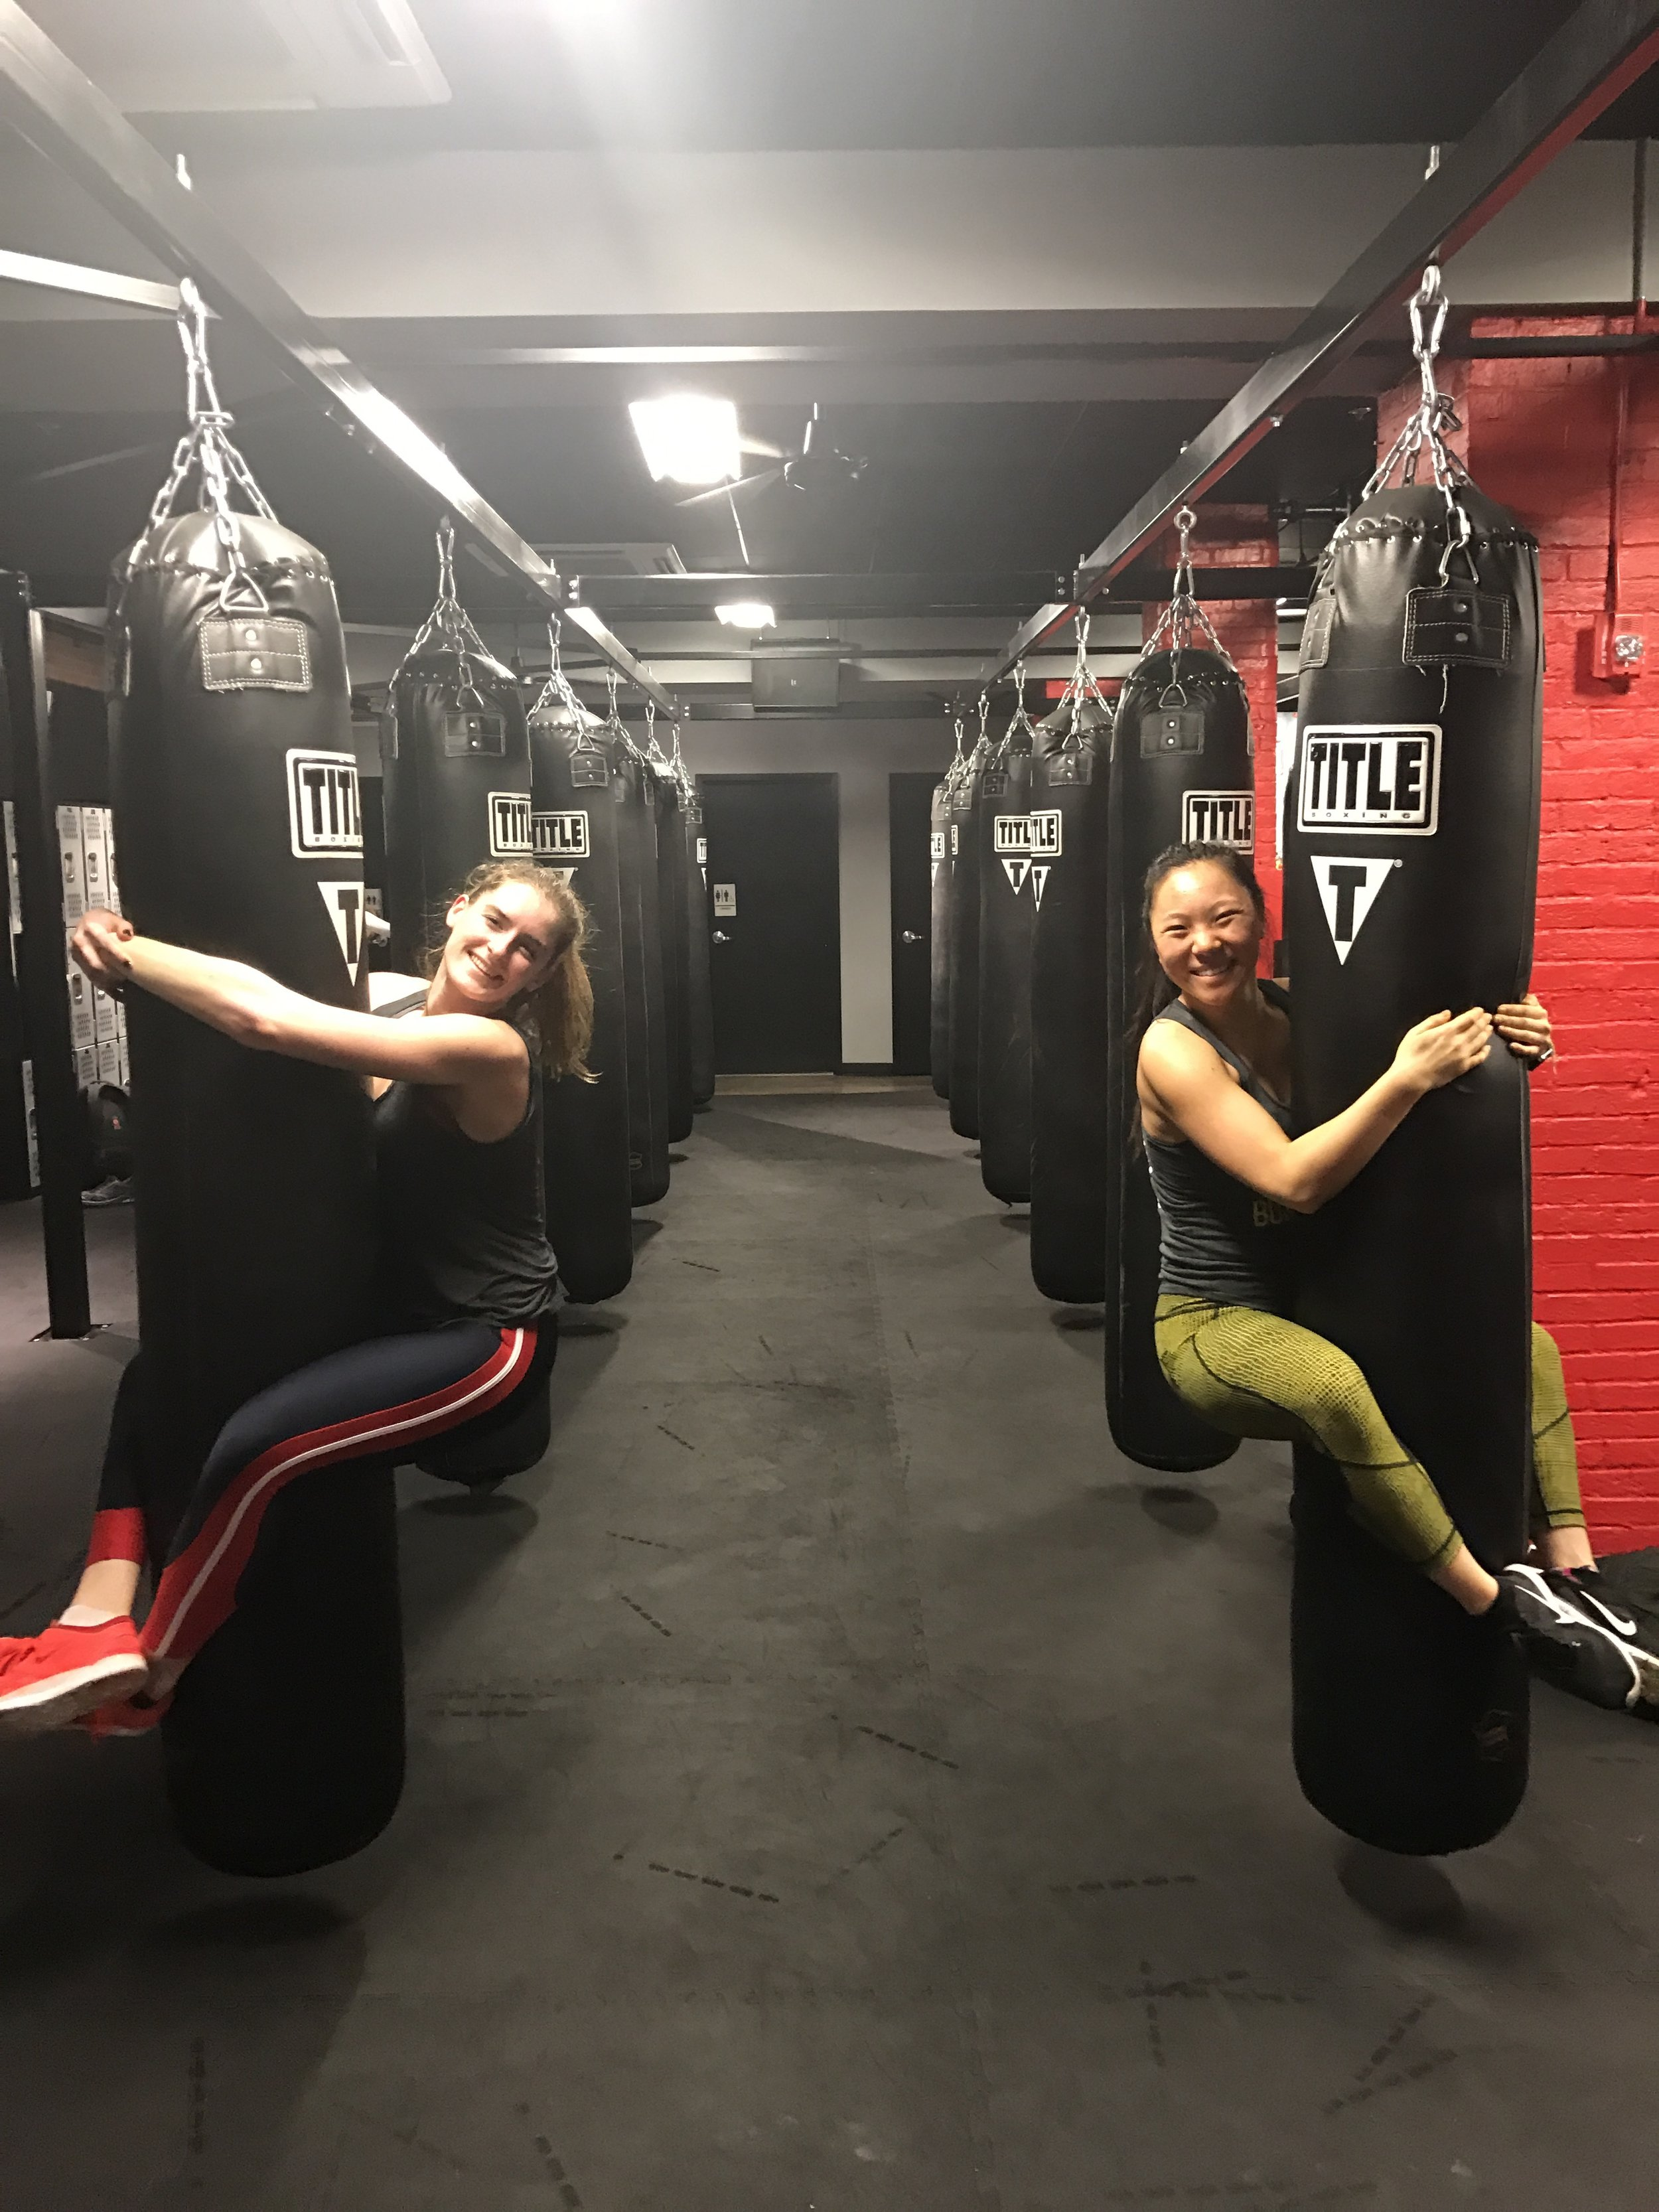 boxing on the bags